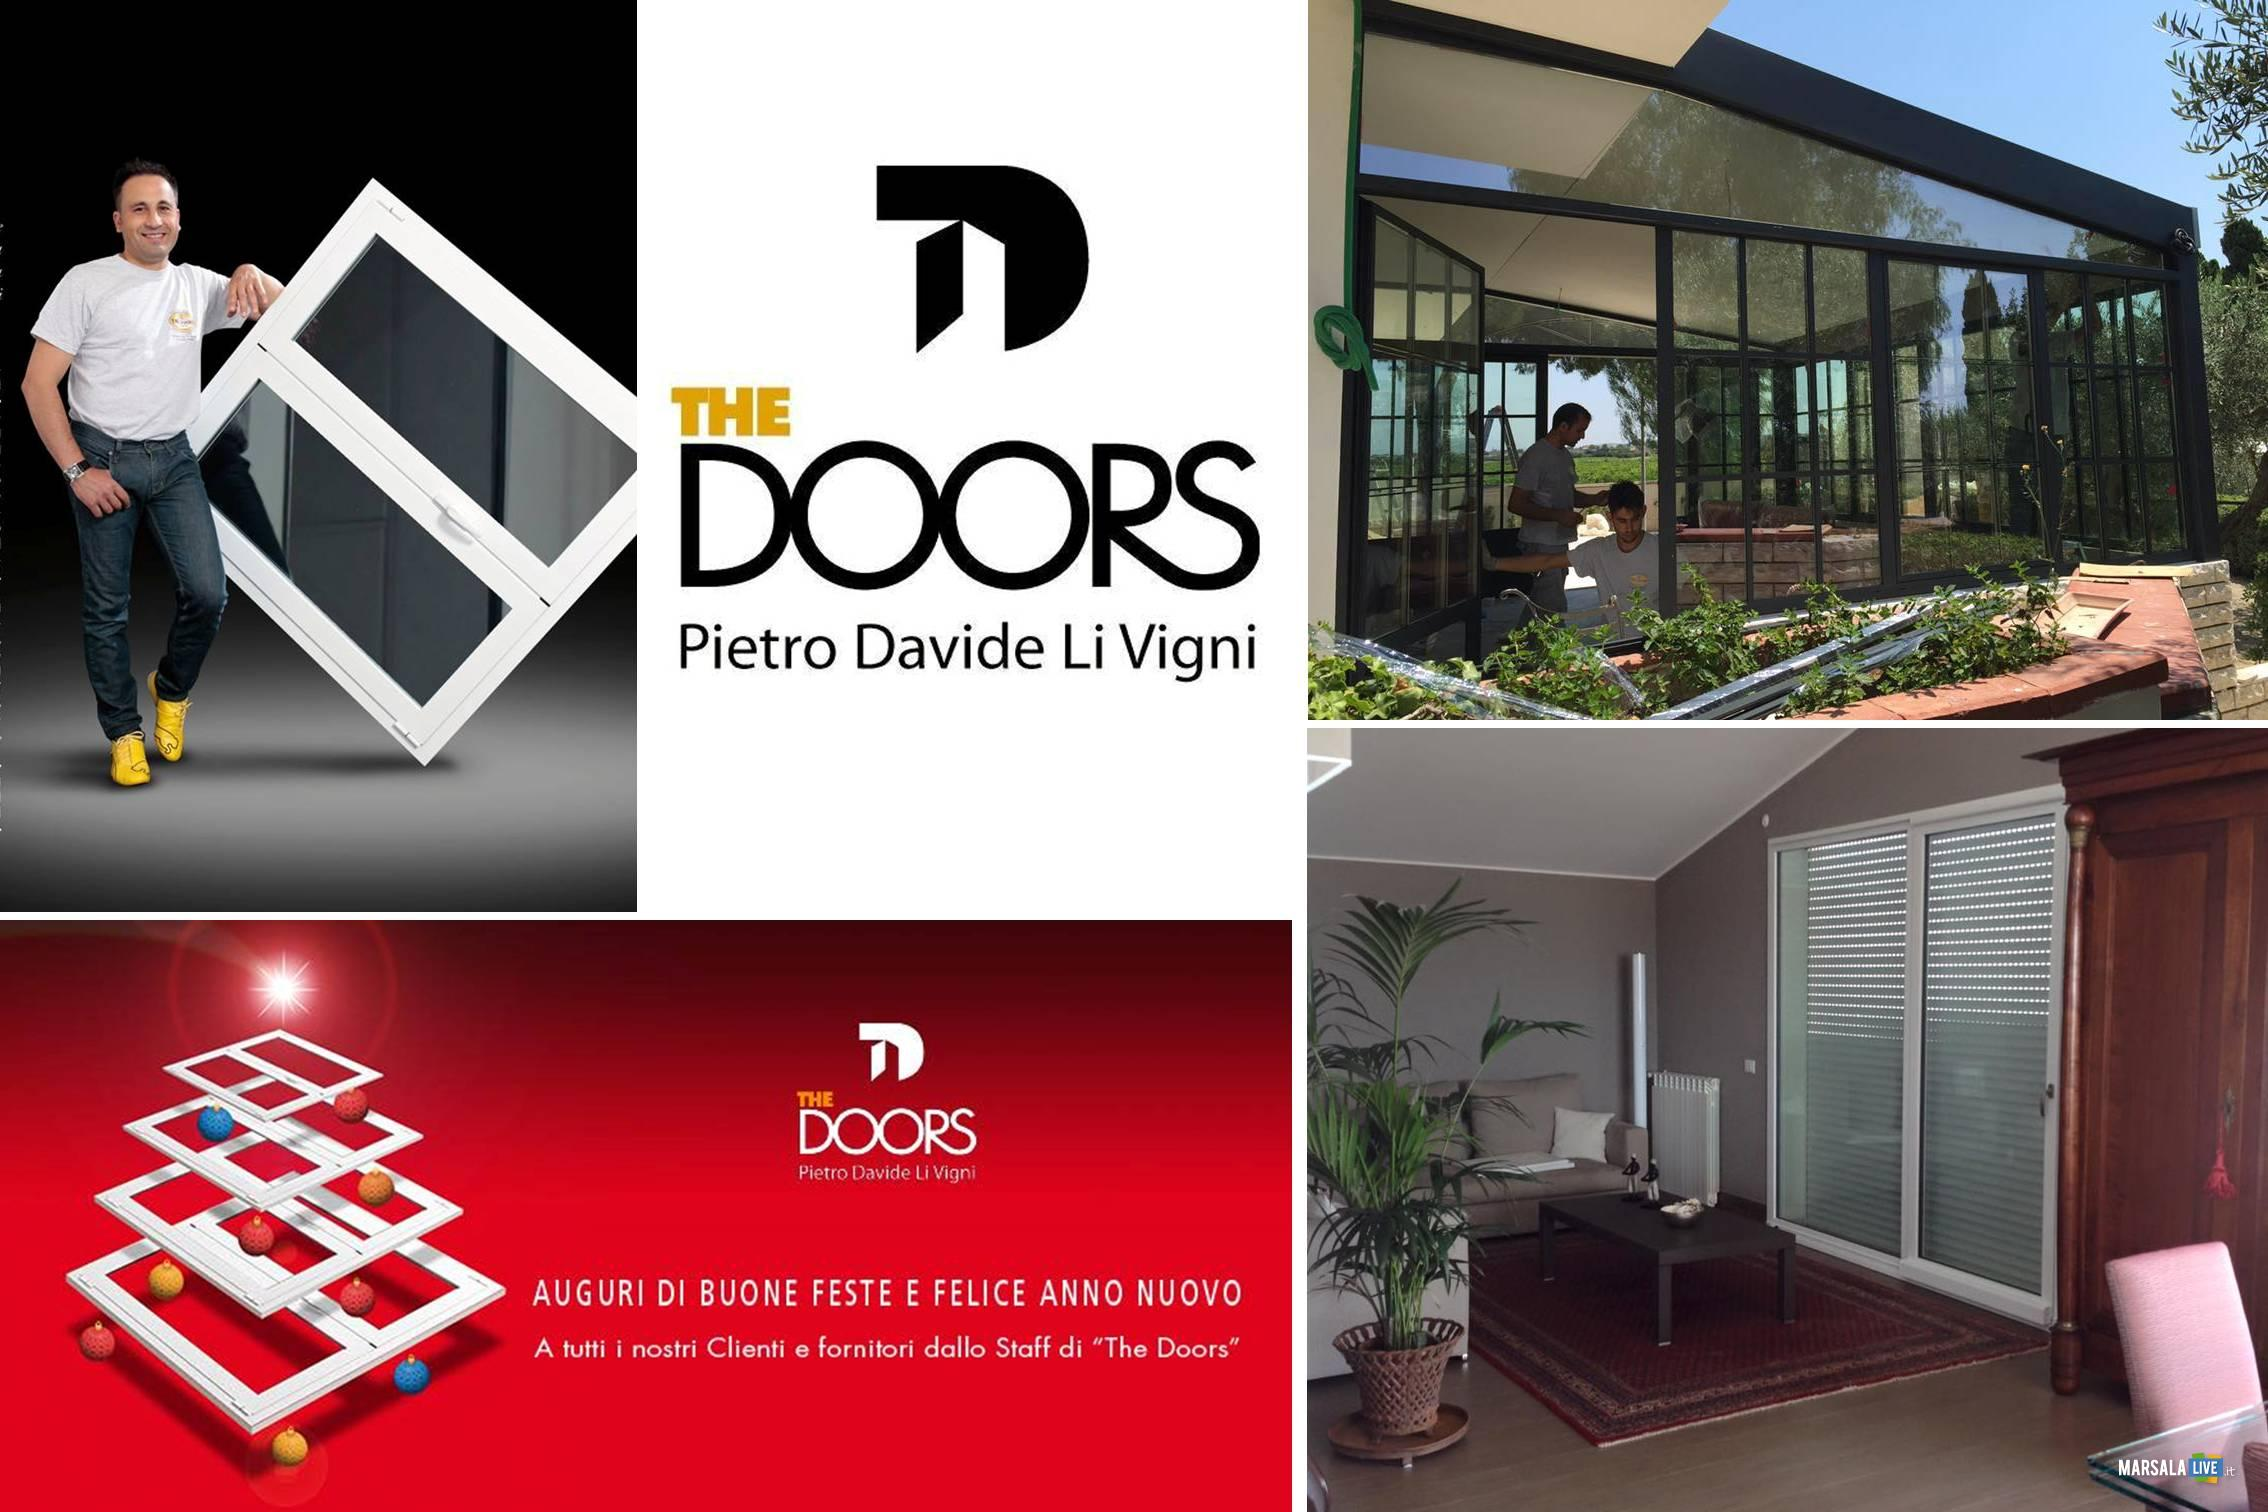 the-doors-di-pietro-davide-li-vigni